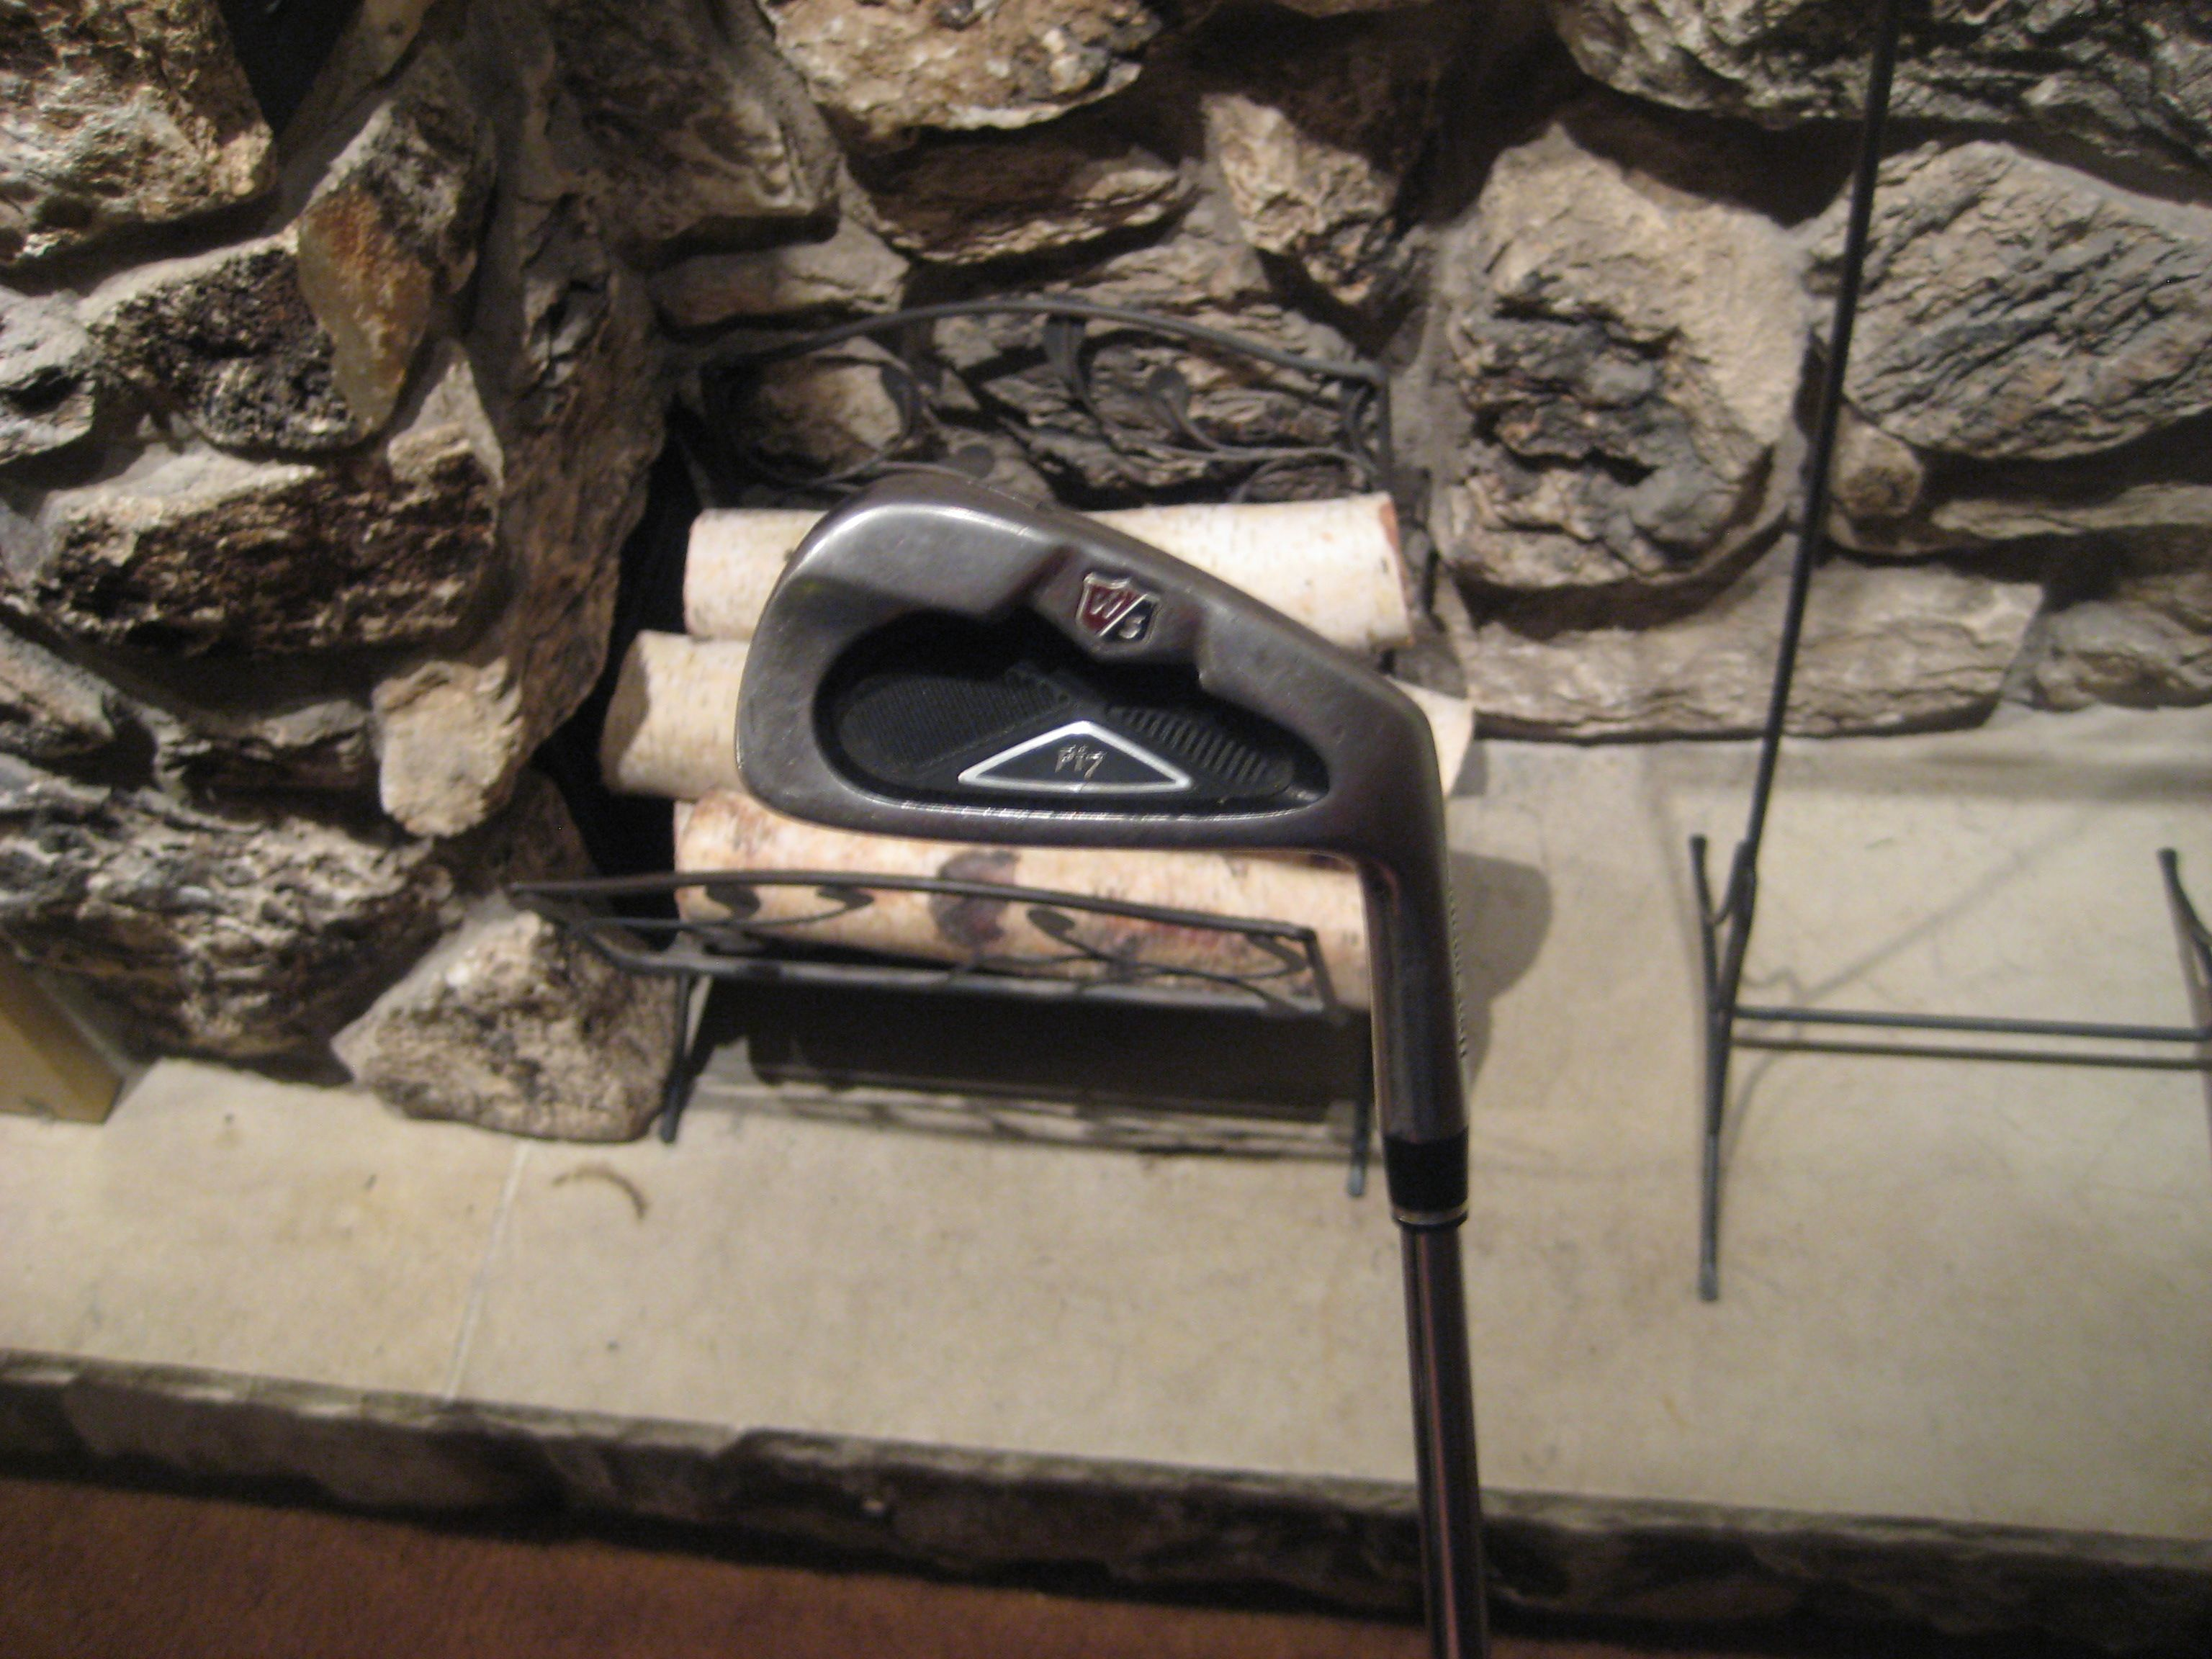 My golf clubs 028.